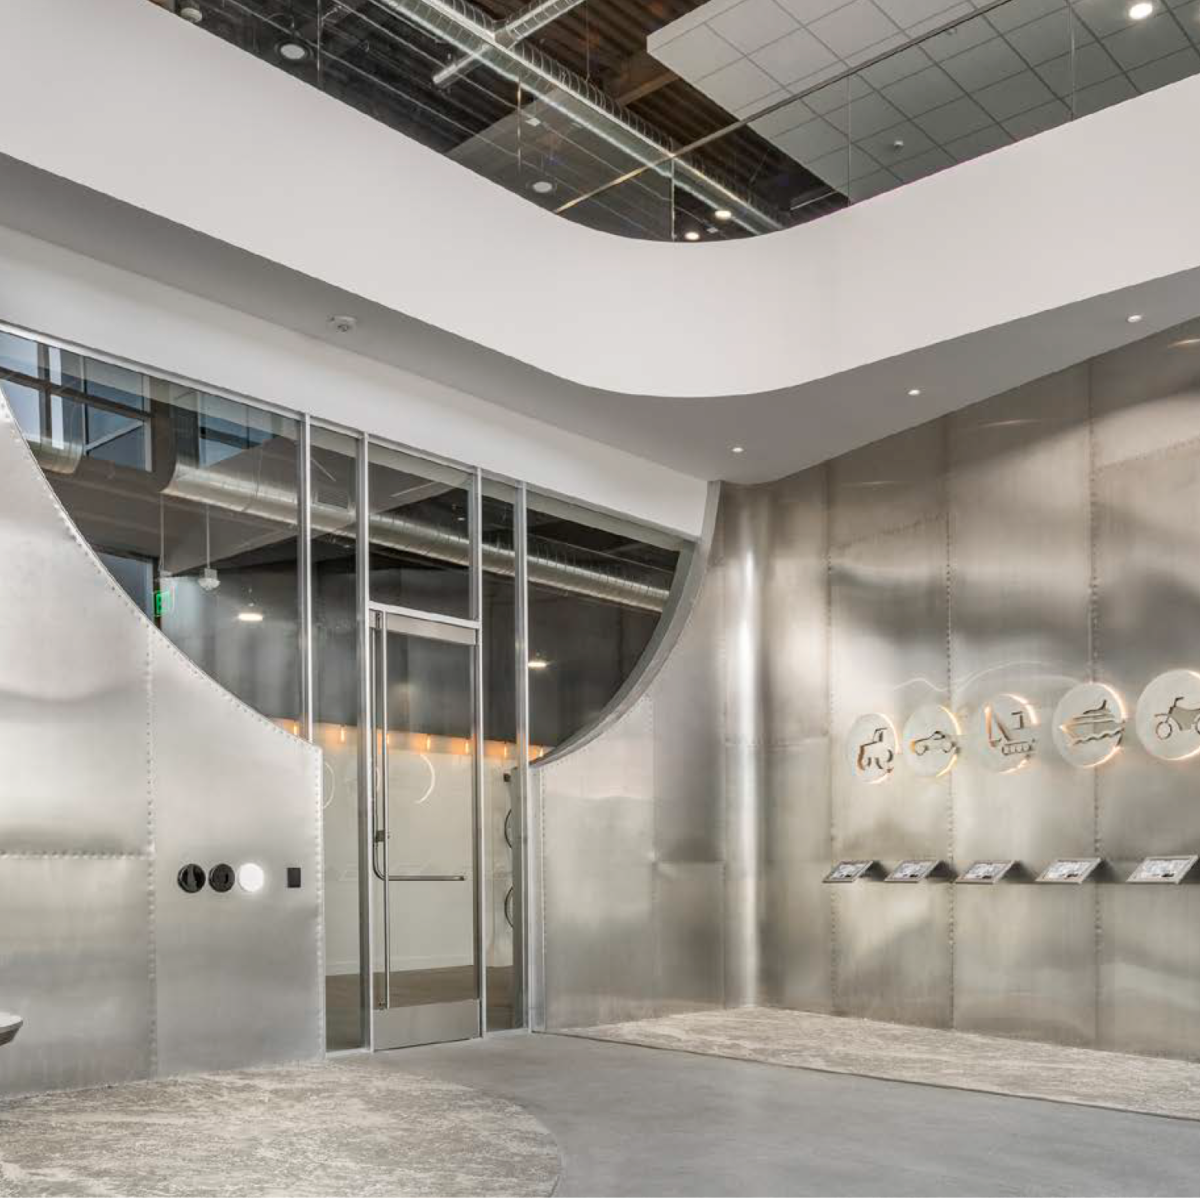 Lobby Clad in riveted Aluminum sheets and custom employee login stations below backlit Laser cut aluminum themes reflecting the firm's concentrations.